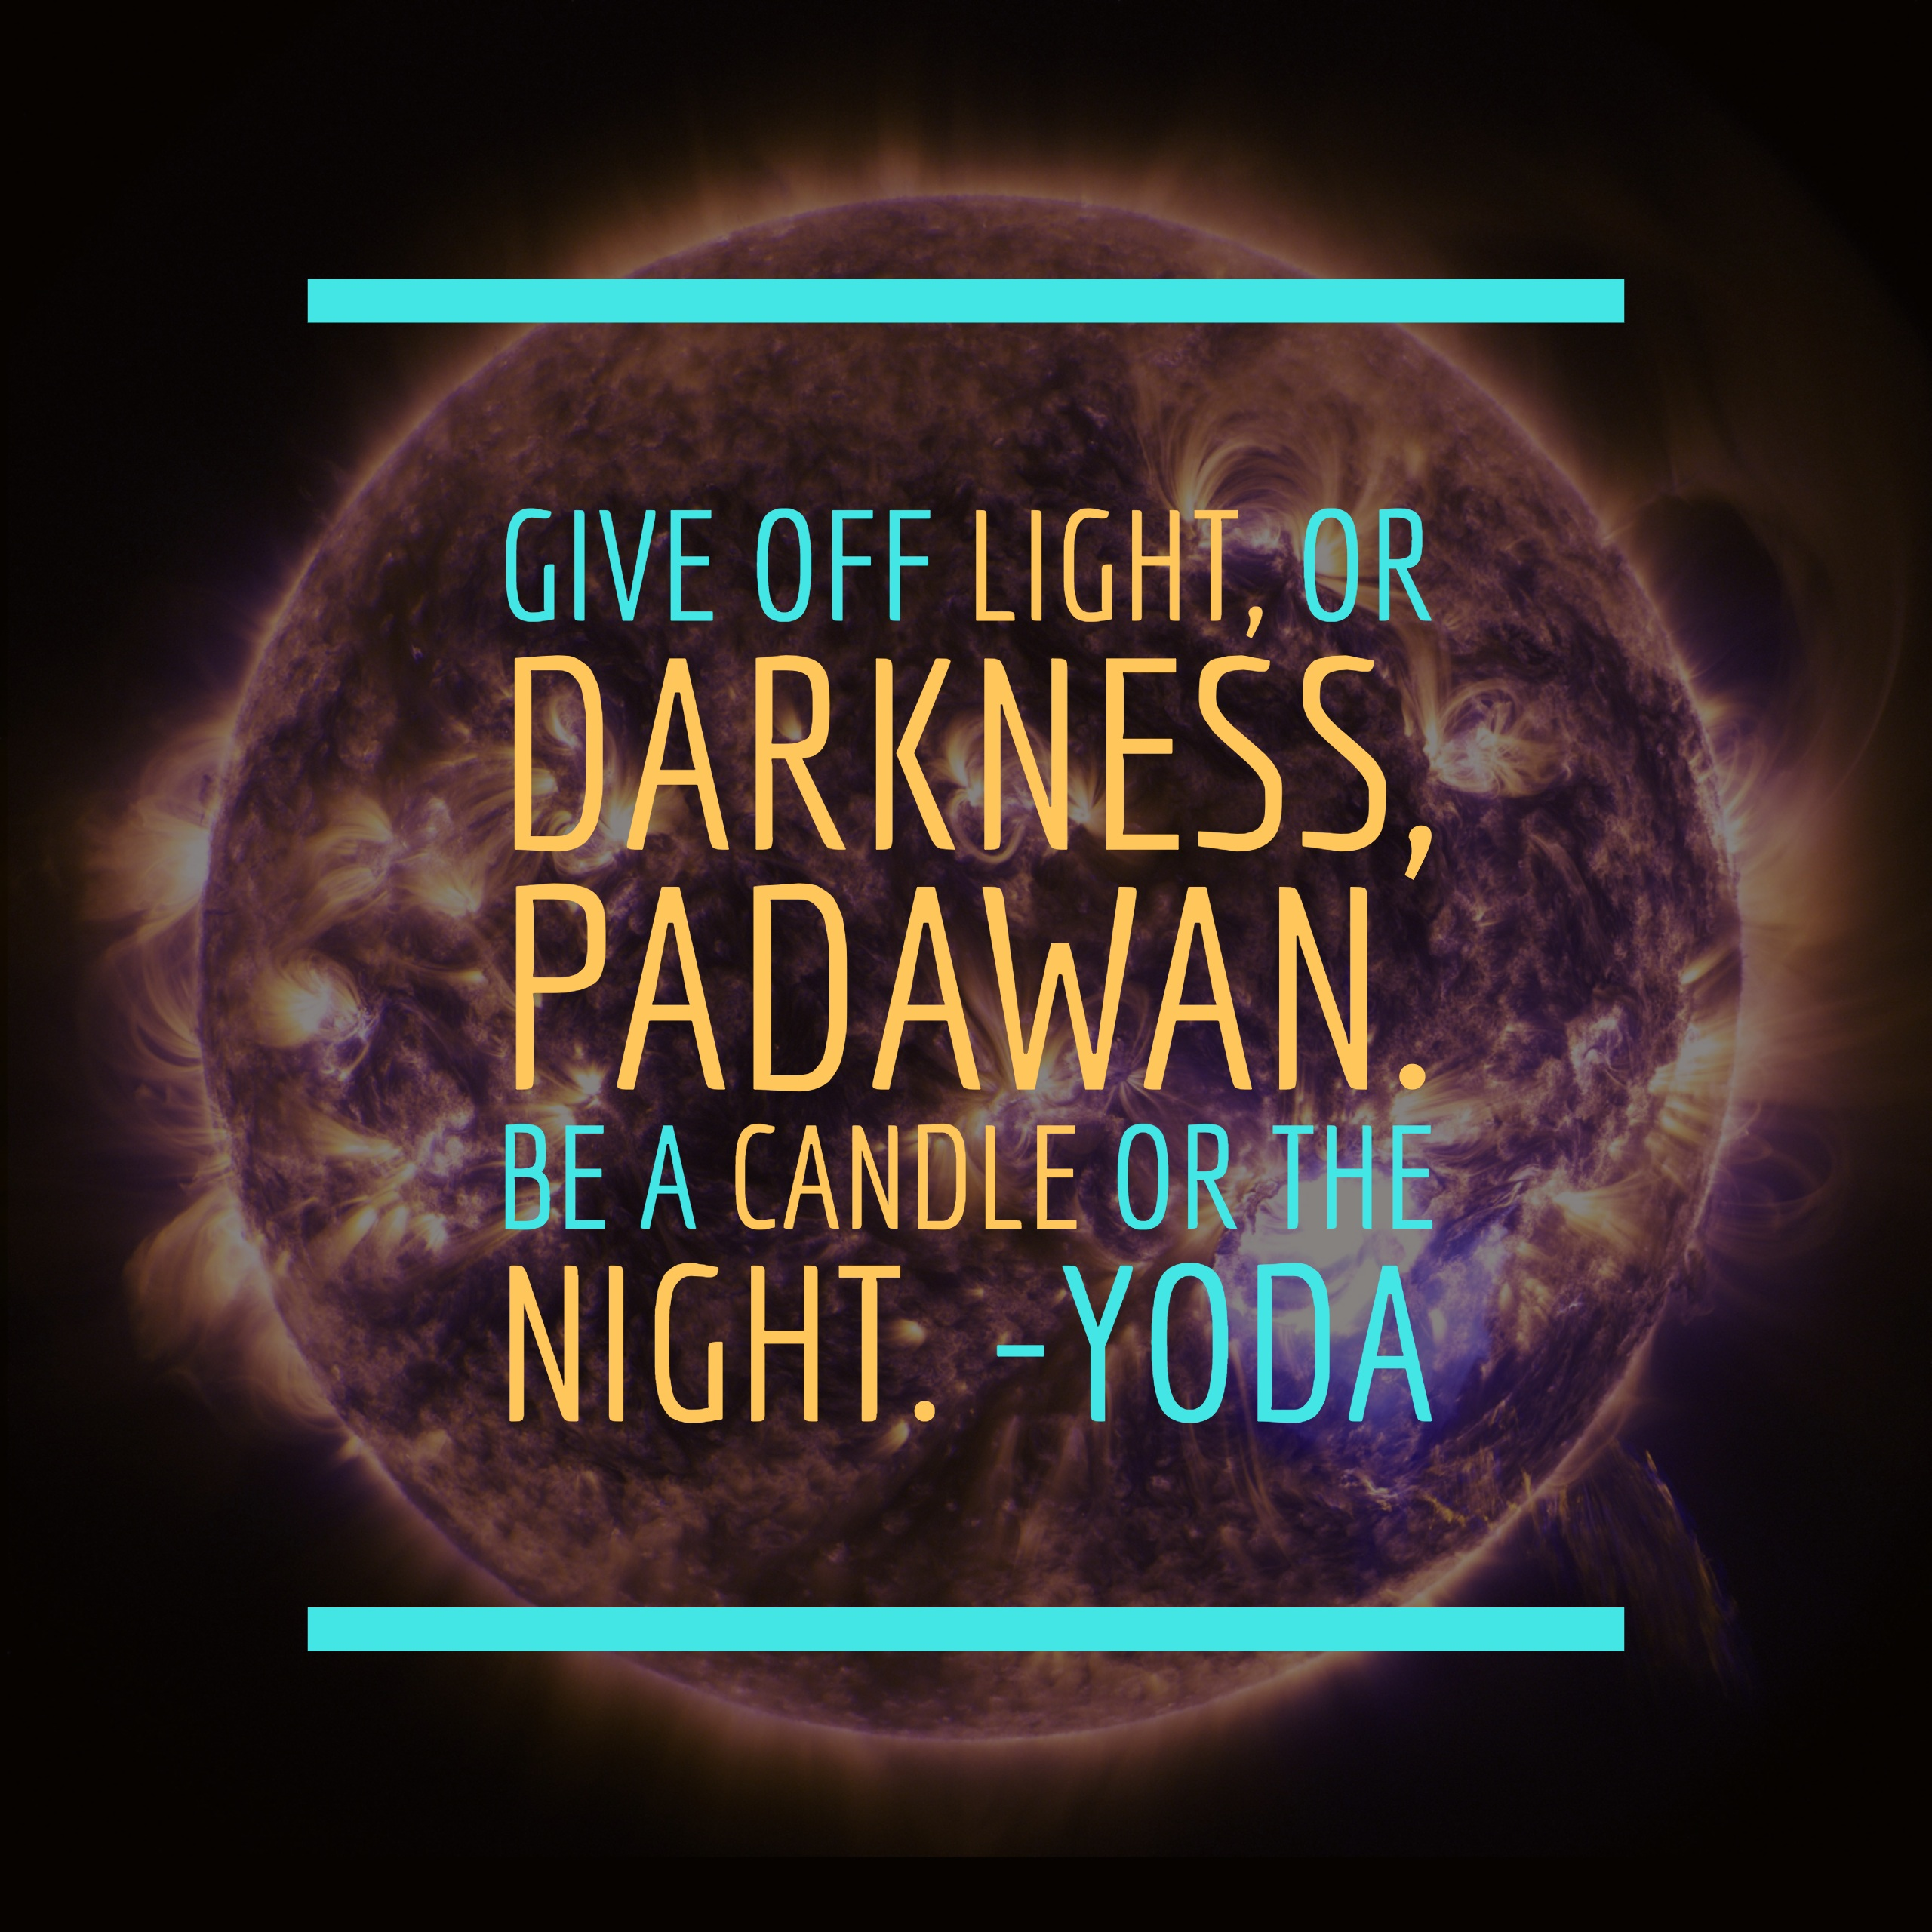 Give off light, or darkness, Padawan. Be a candle or the night. -Yoda